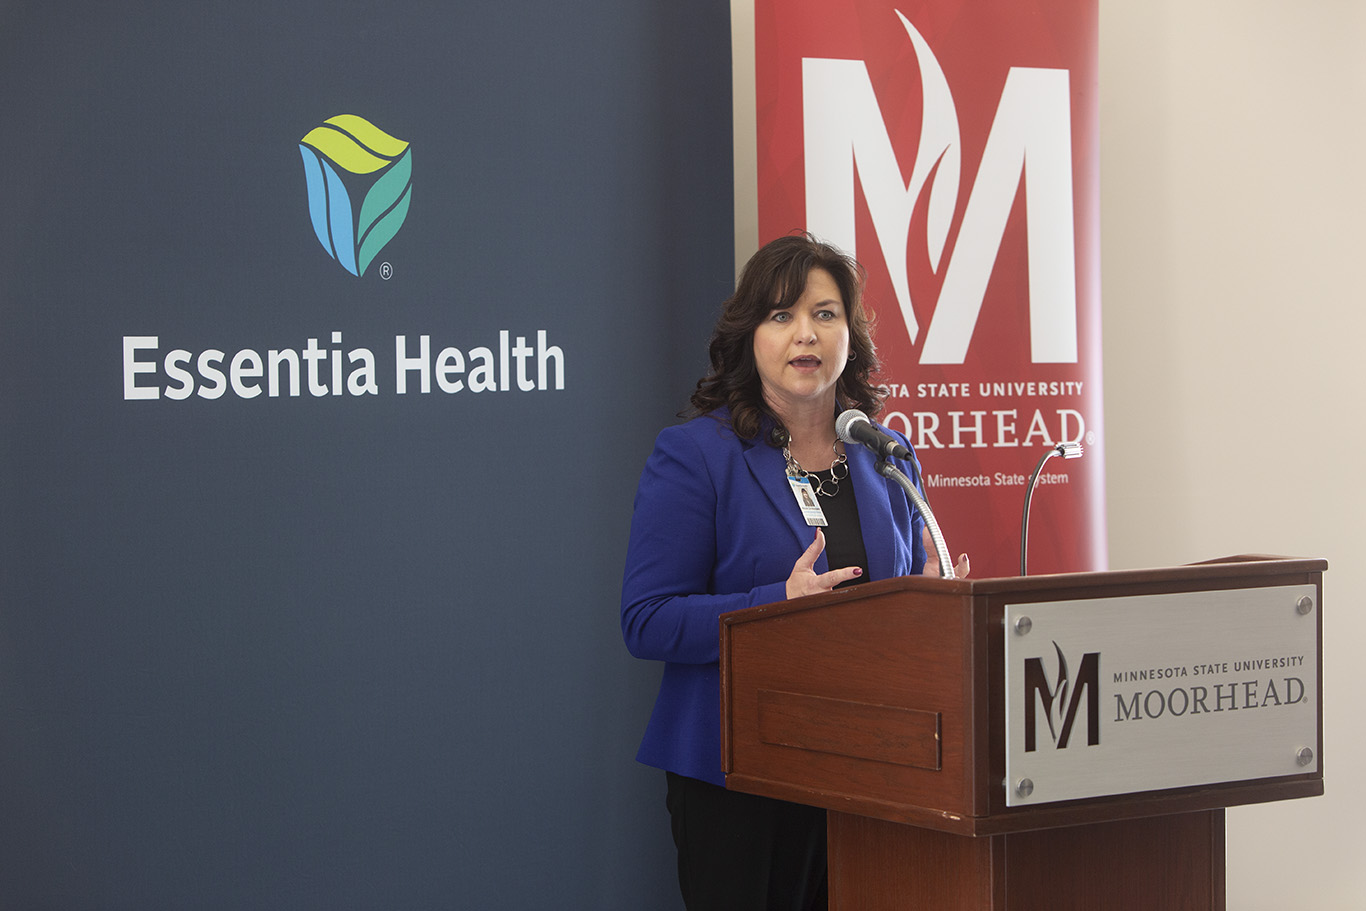 Nicole Christensen, Essentia Health Chief Nursing Officer, addresses media at the May 10 news conference announcing the Essentia Health Center for Nursing at MSUM.